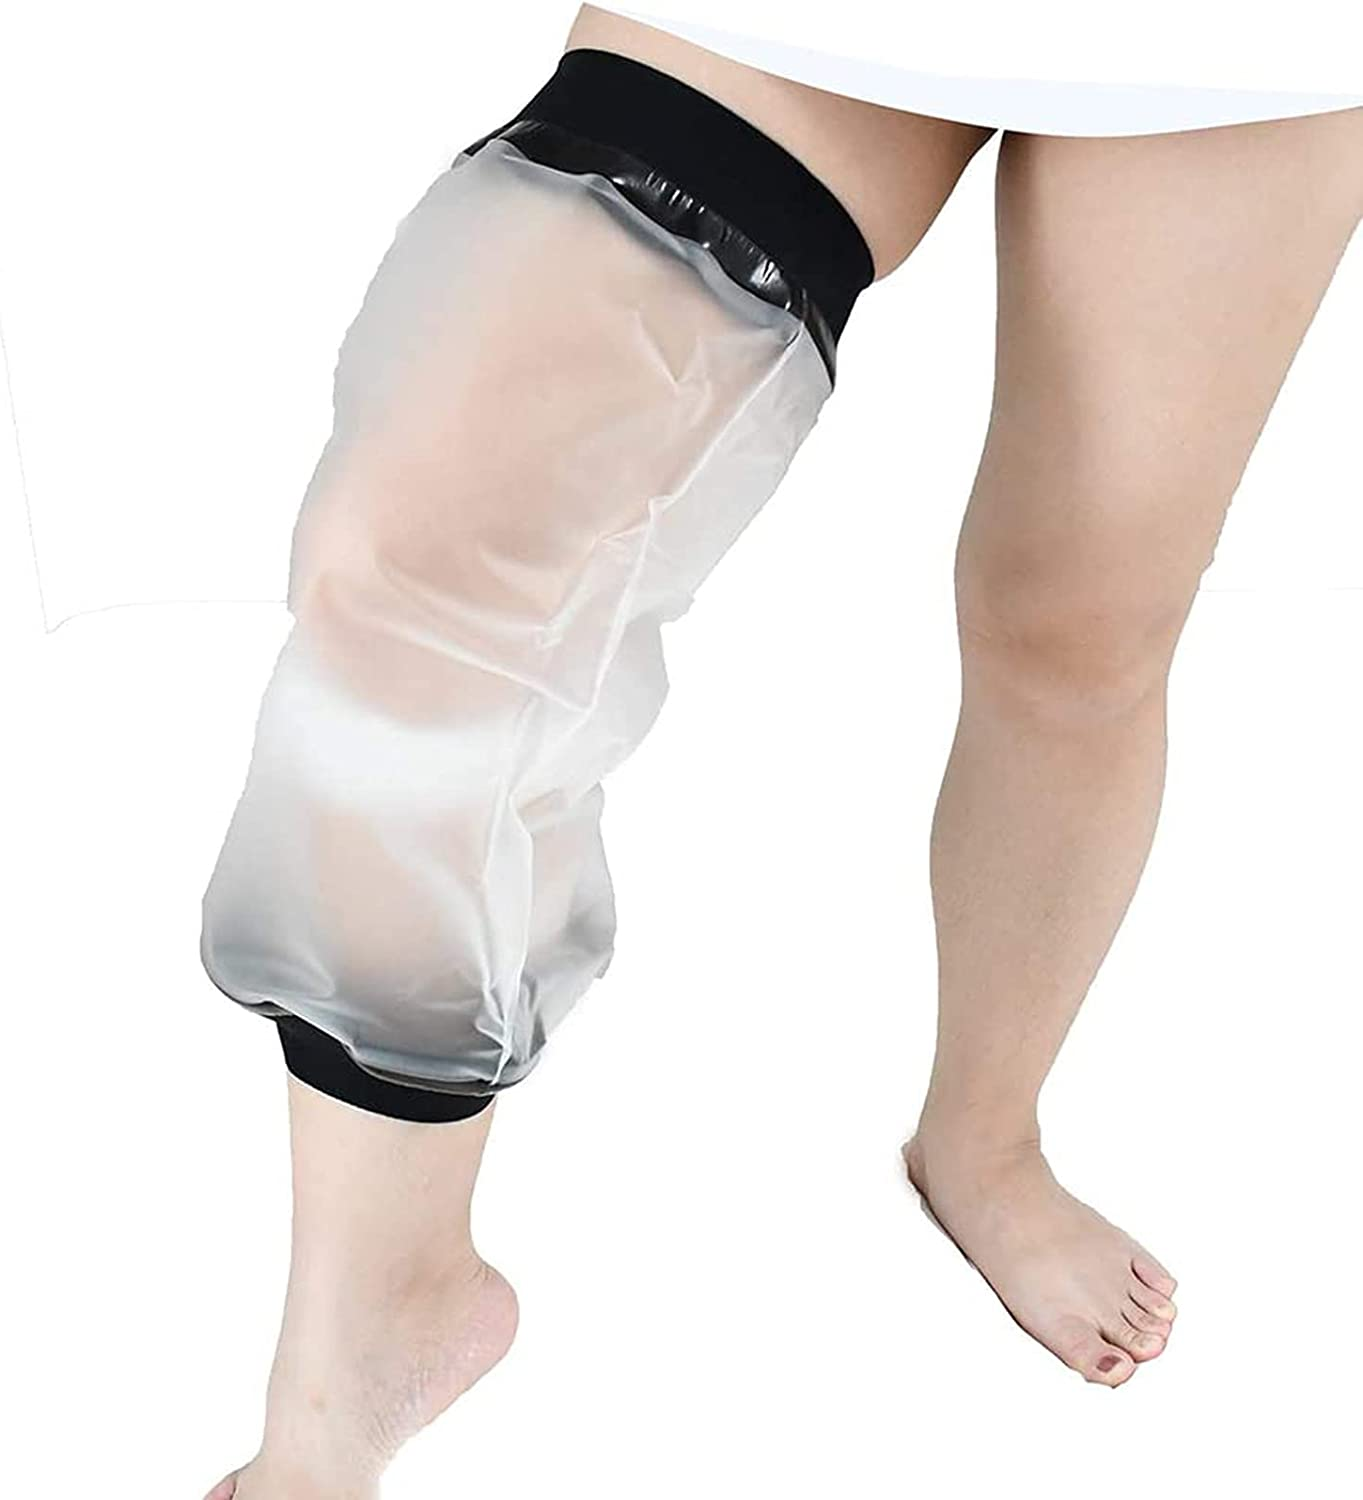 NXM Adult Knee Max 68% OFF Cast Cover Surgery Waterproof 40% OFF Cheap Sale Shower